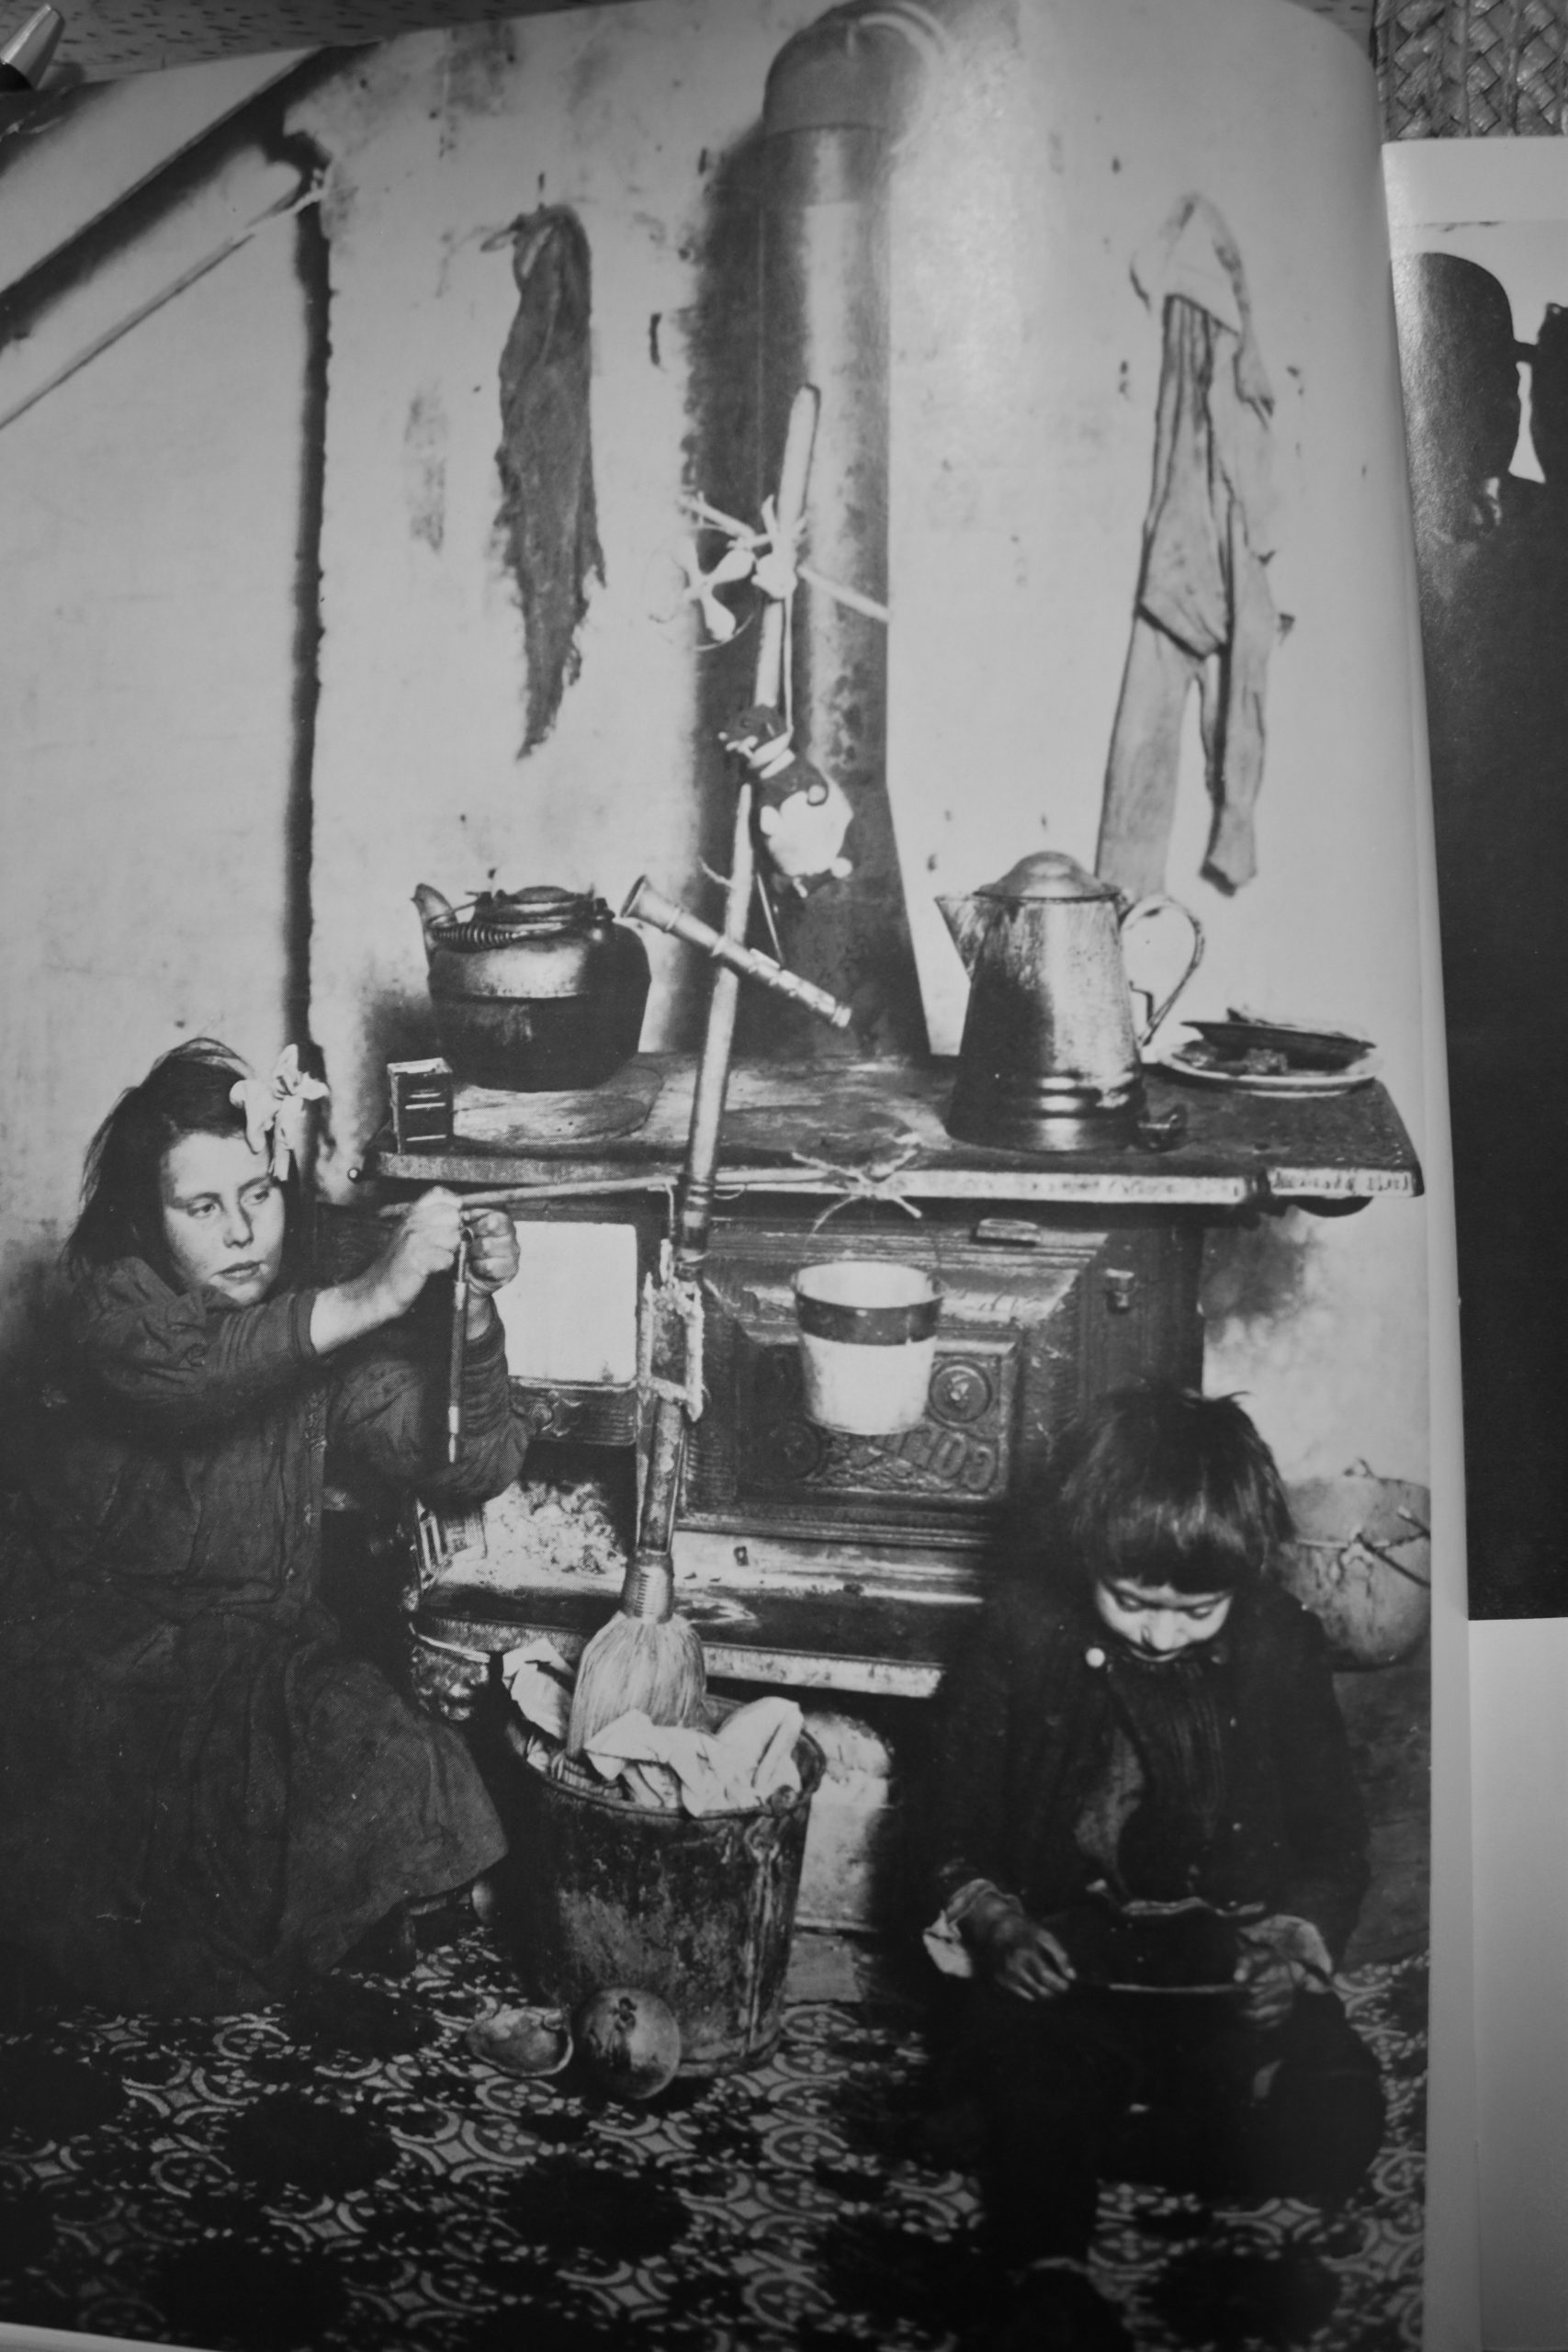 NEW YORK STREET KIDS--Courtesy of Children's Aid Society: Two children making a Christmas Tree out of a broom